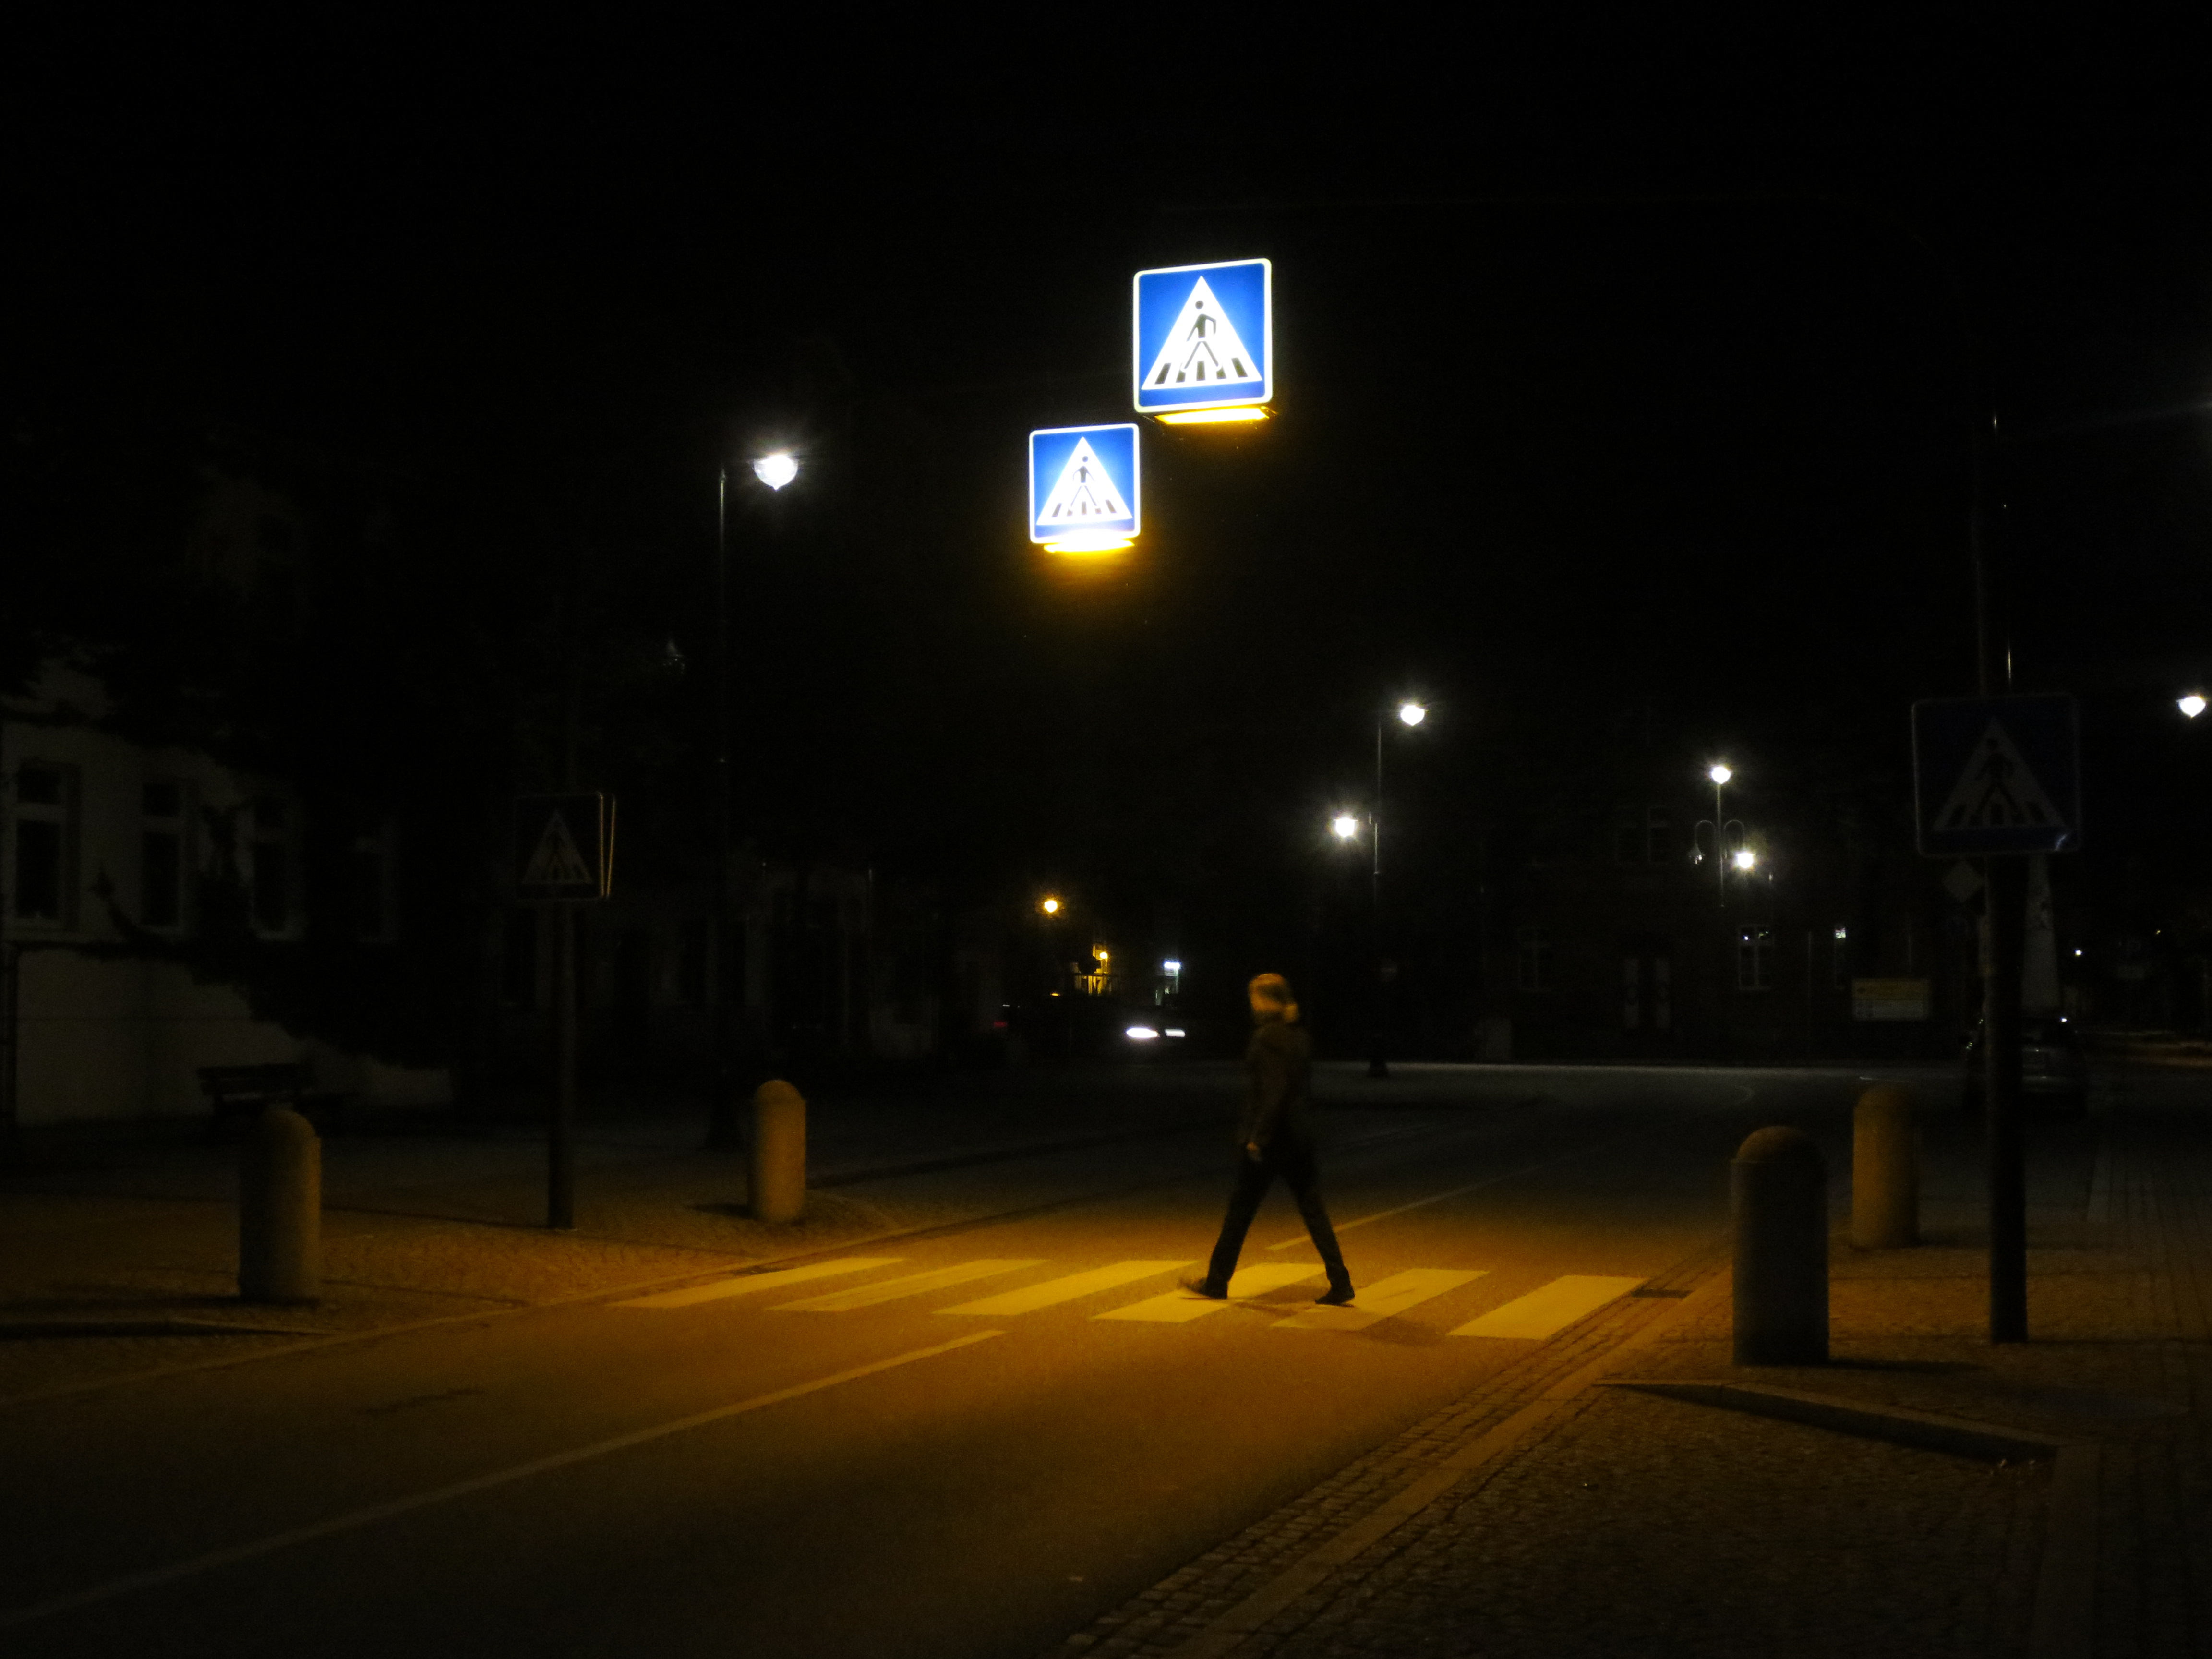 Crossing the street at night